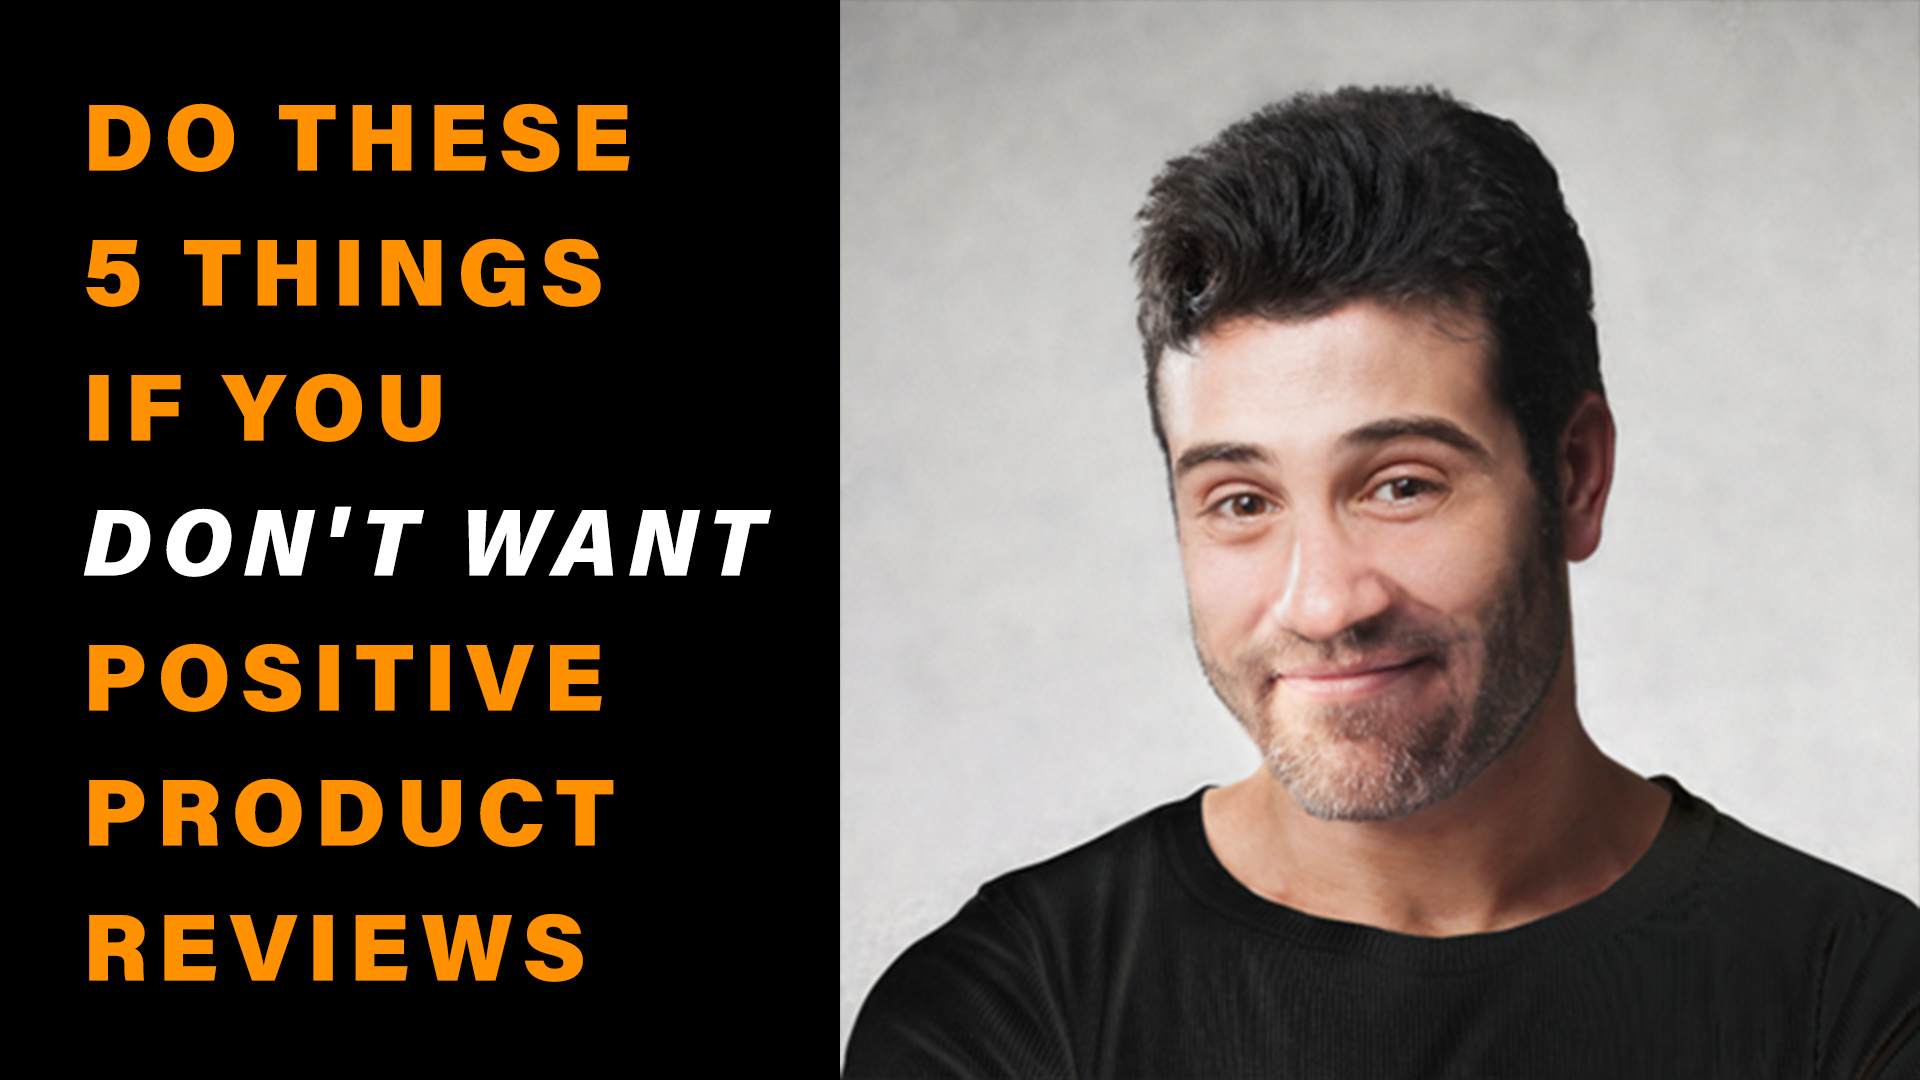 Do These 5 Things If You DON'T WANT Positive Product Reviews